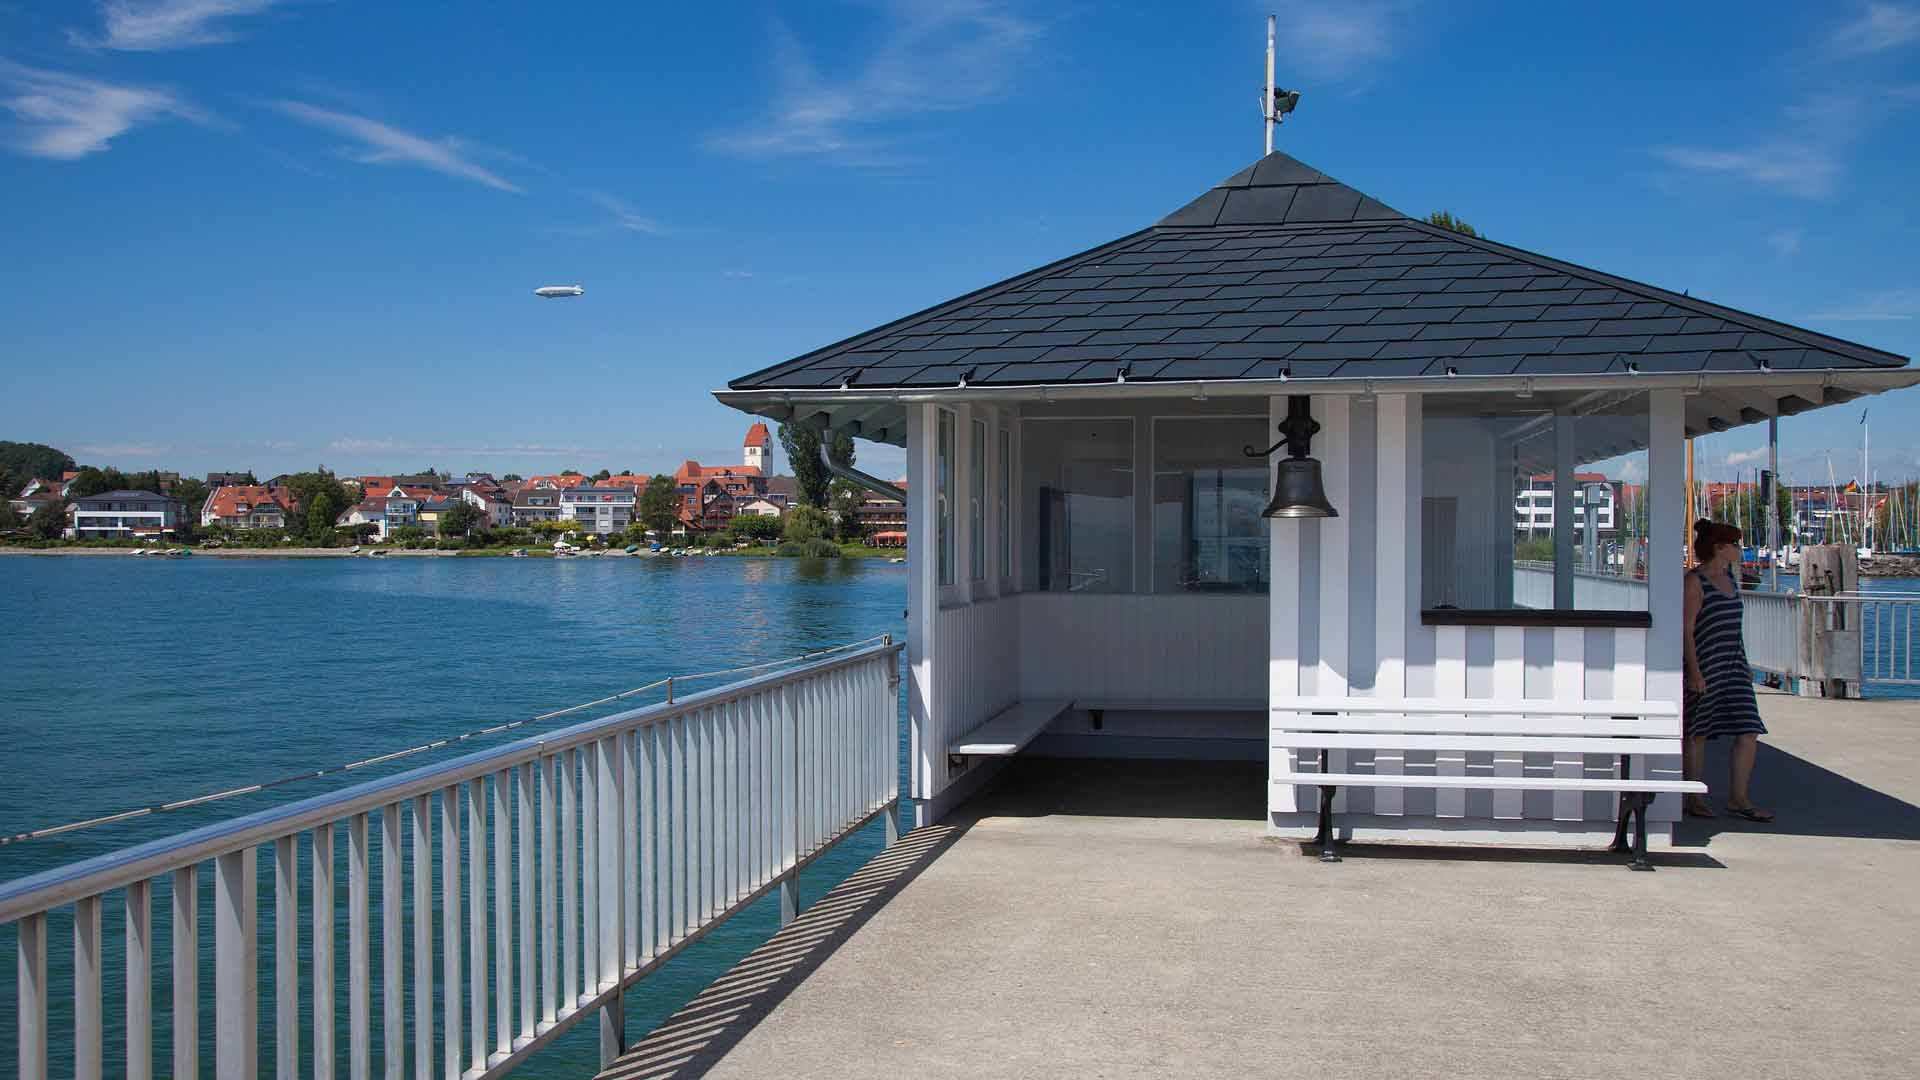 Die Pier in Immenstaad.